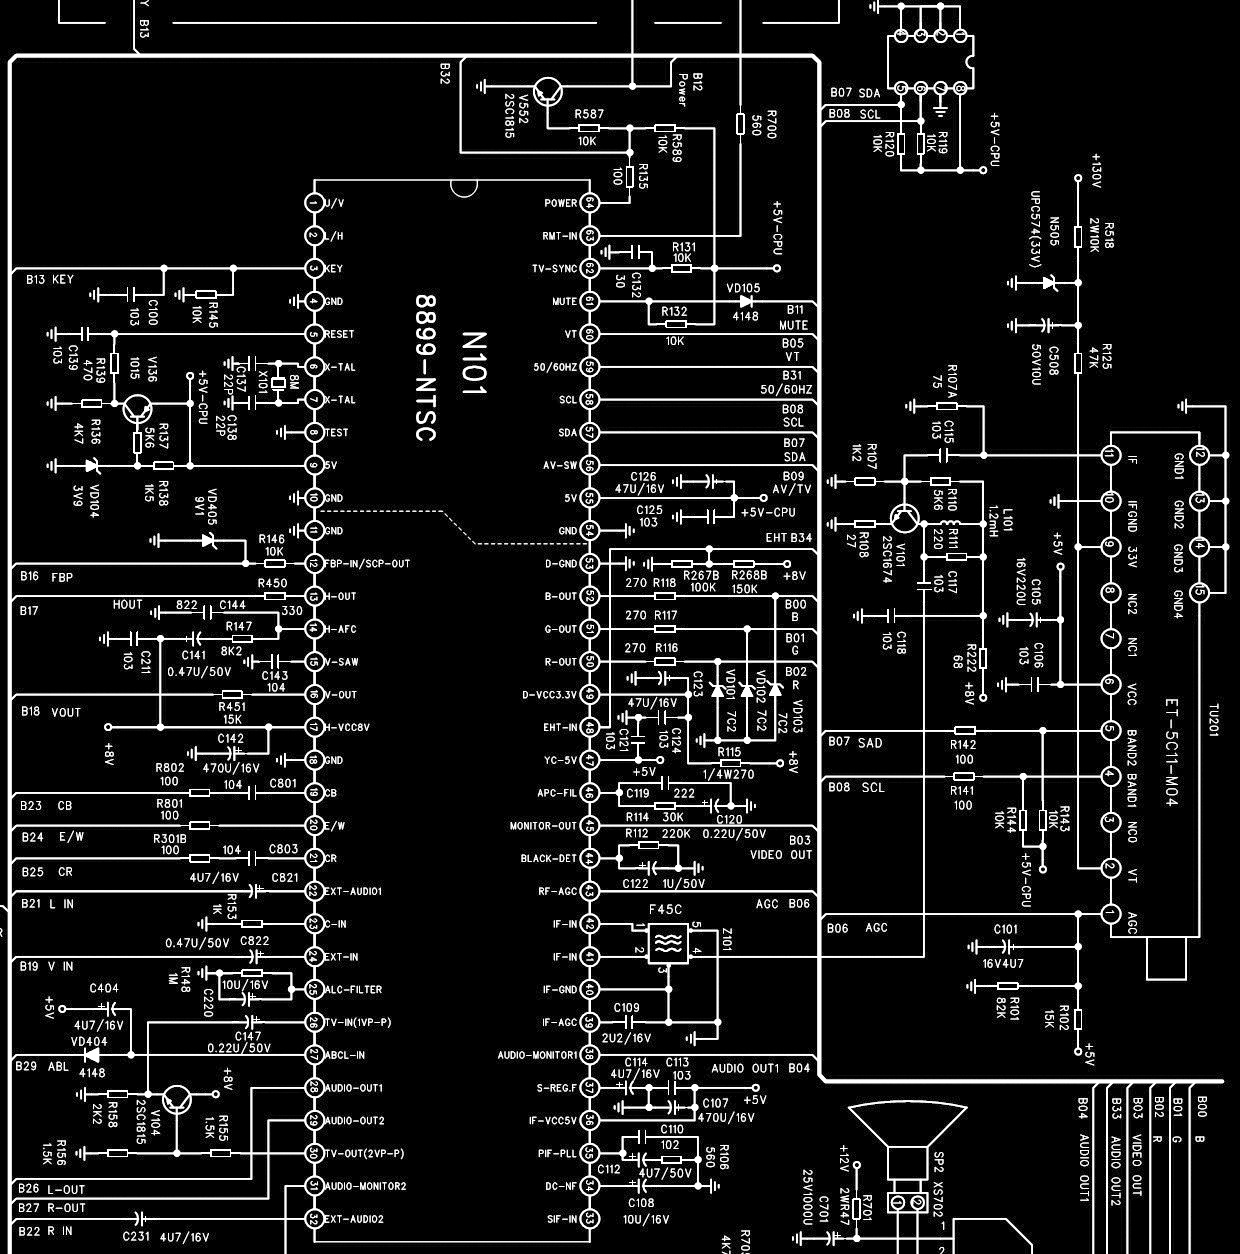 small resolution of circuit diagram click on the circuit diagram to magnify